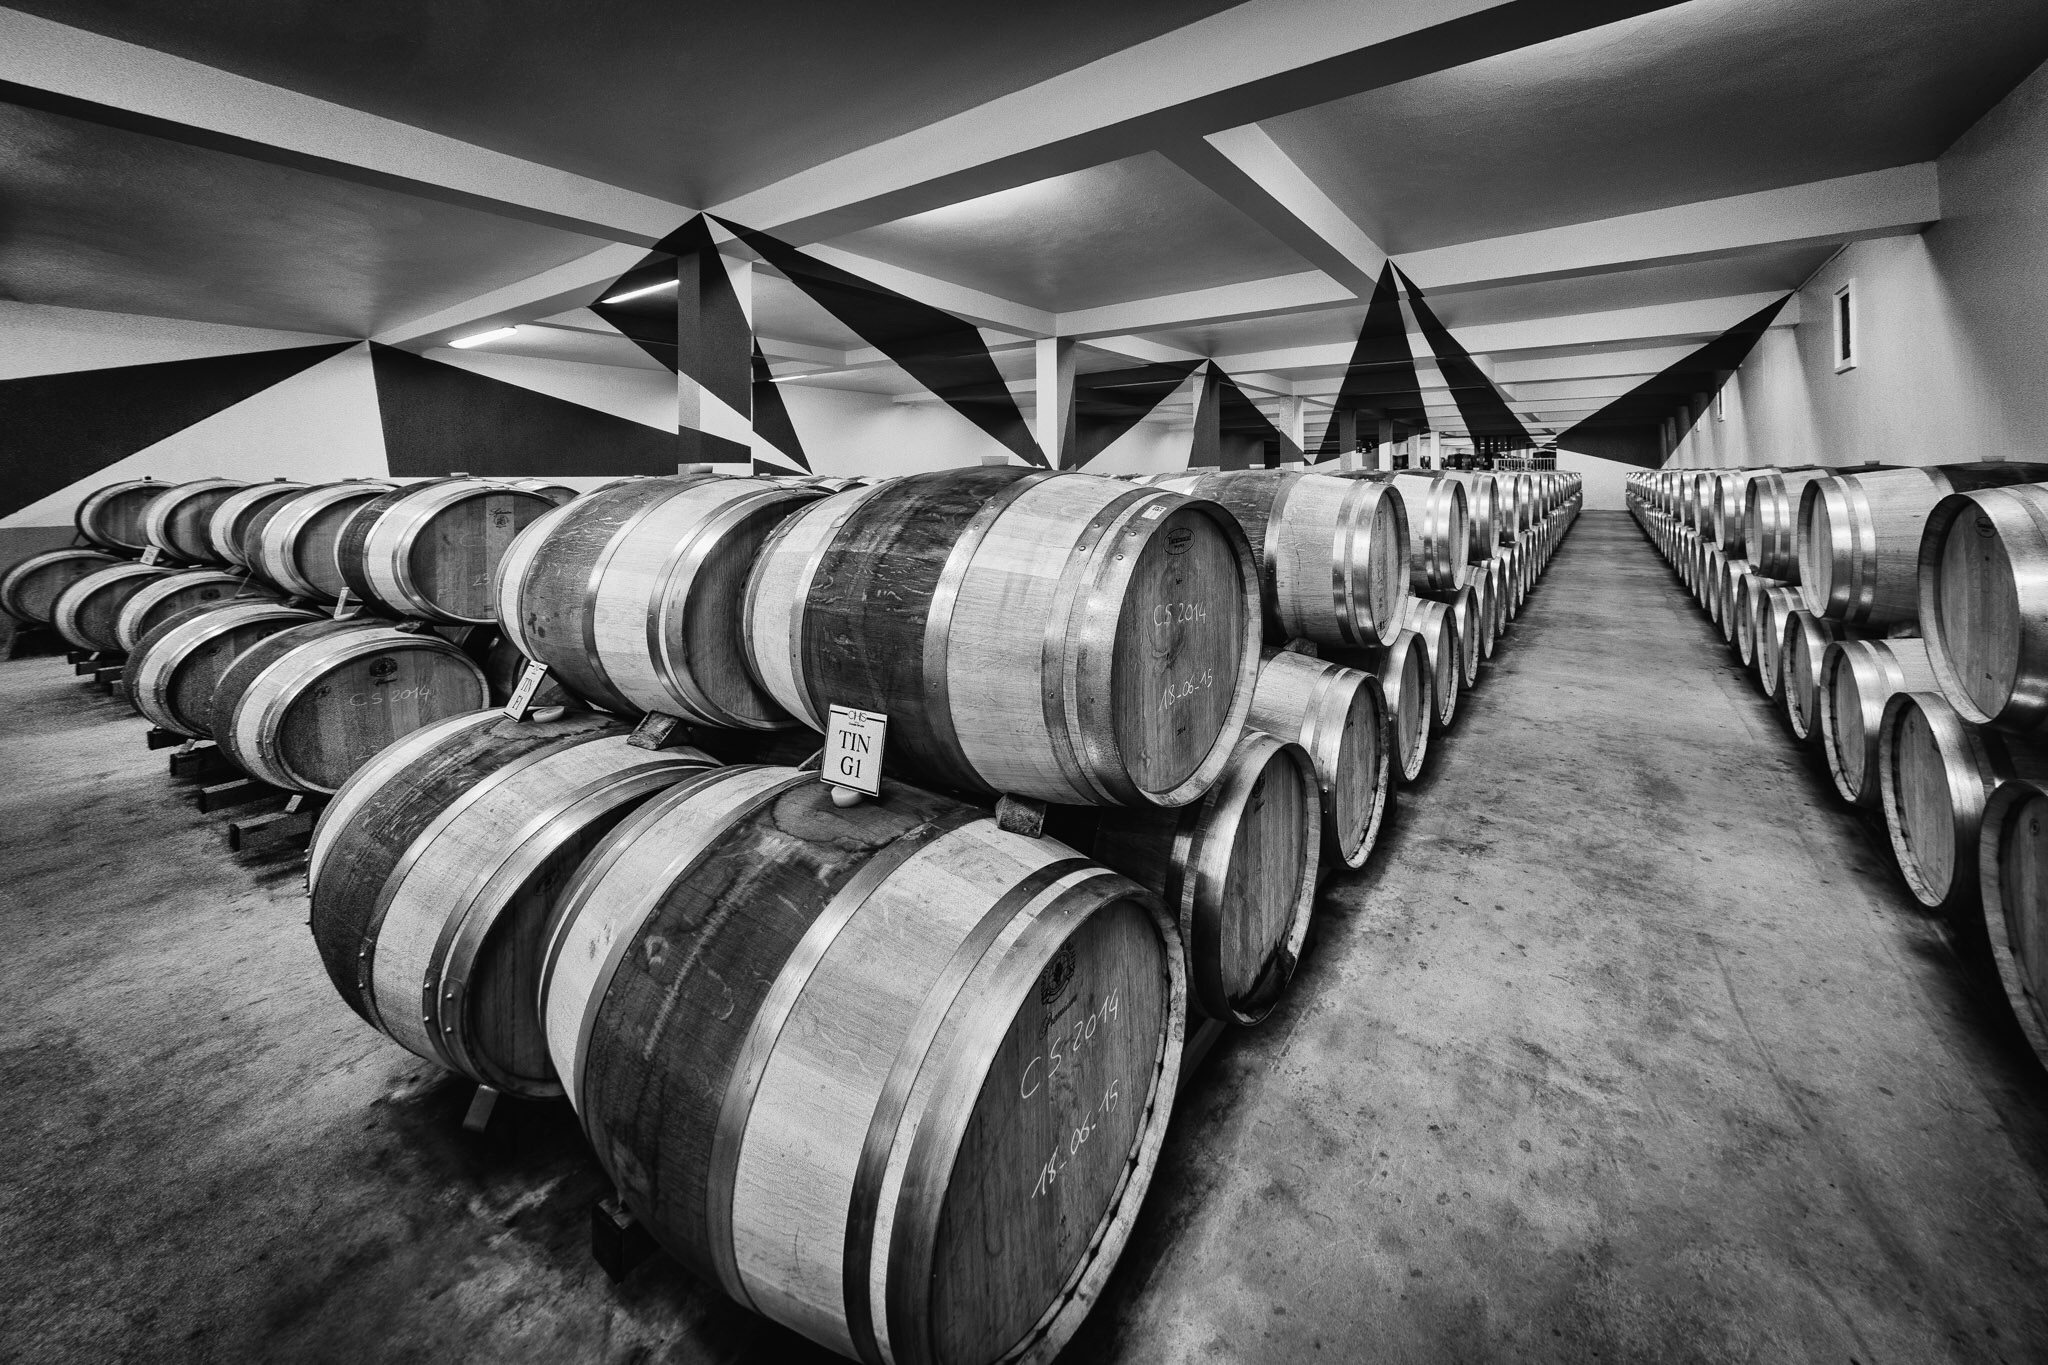 An unusual piecee of interior photography work - a barrel store full of wine and art!